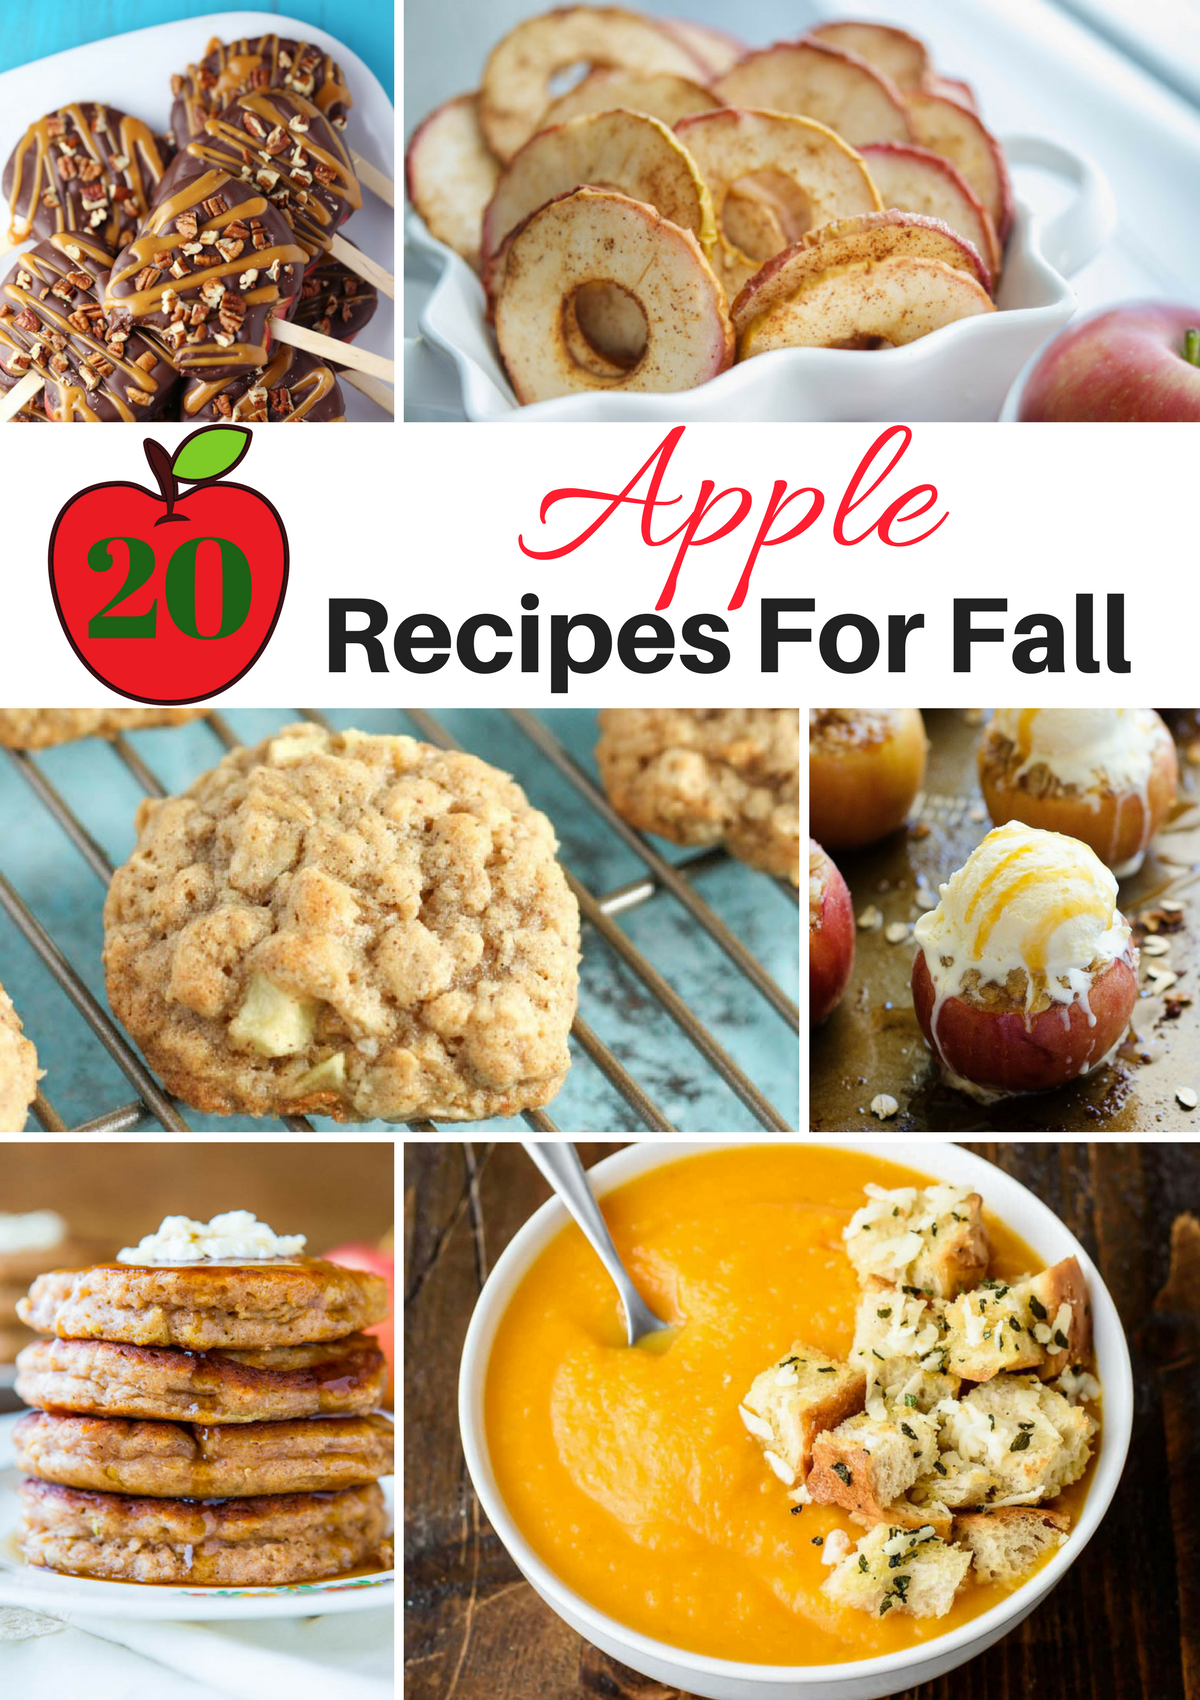 Apple Recipes, Fall Baking, Fall Comfort Food, Recipes with Apples, Apple Picking